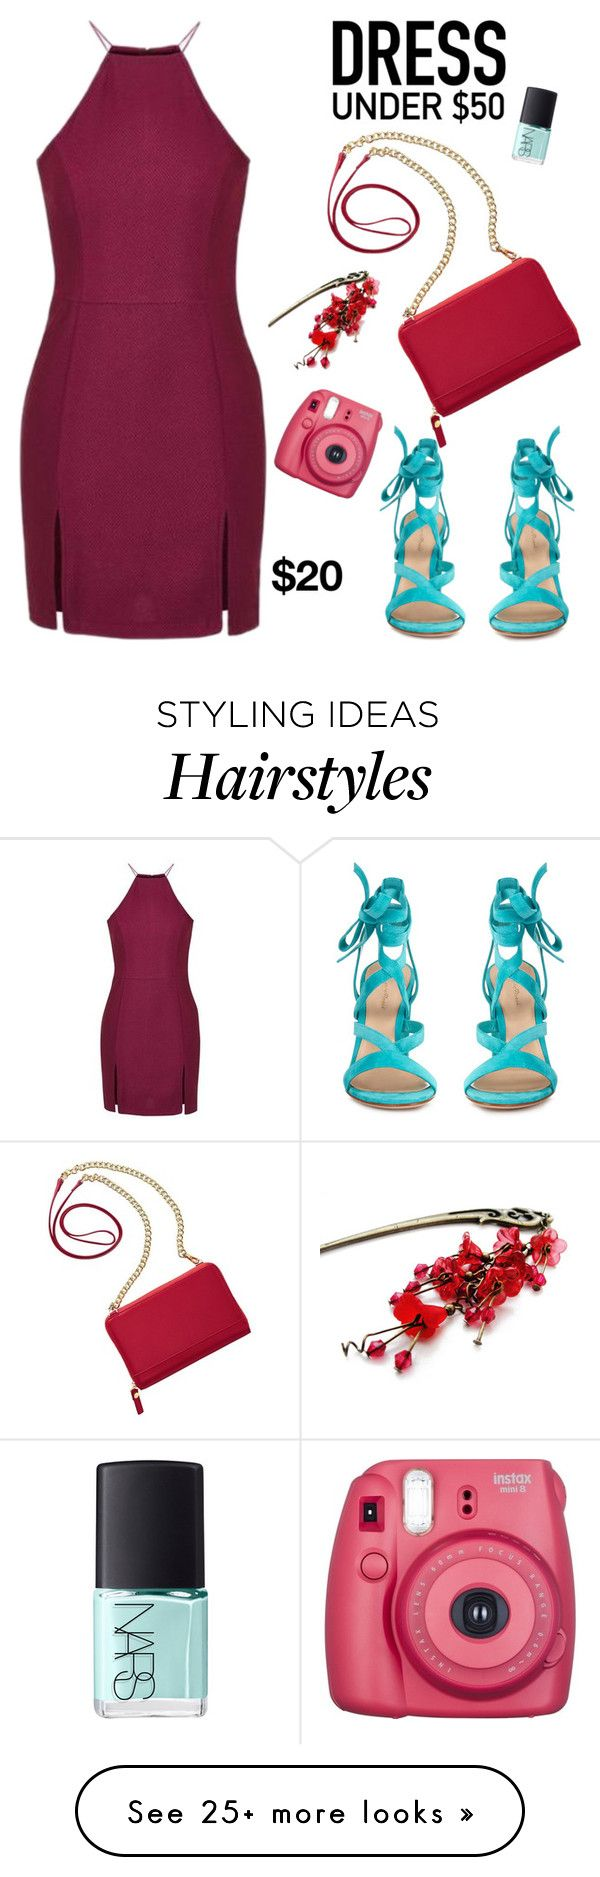 """""""Dress Under $50"""" by yinggao on Polyvore featuring Topshop, TravelSmith, Gianvito Rossi, NARS Cosmetics, Summer and Dressunder50"""